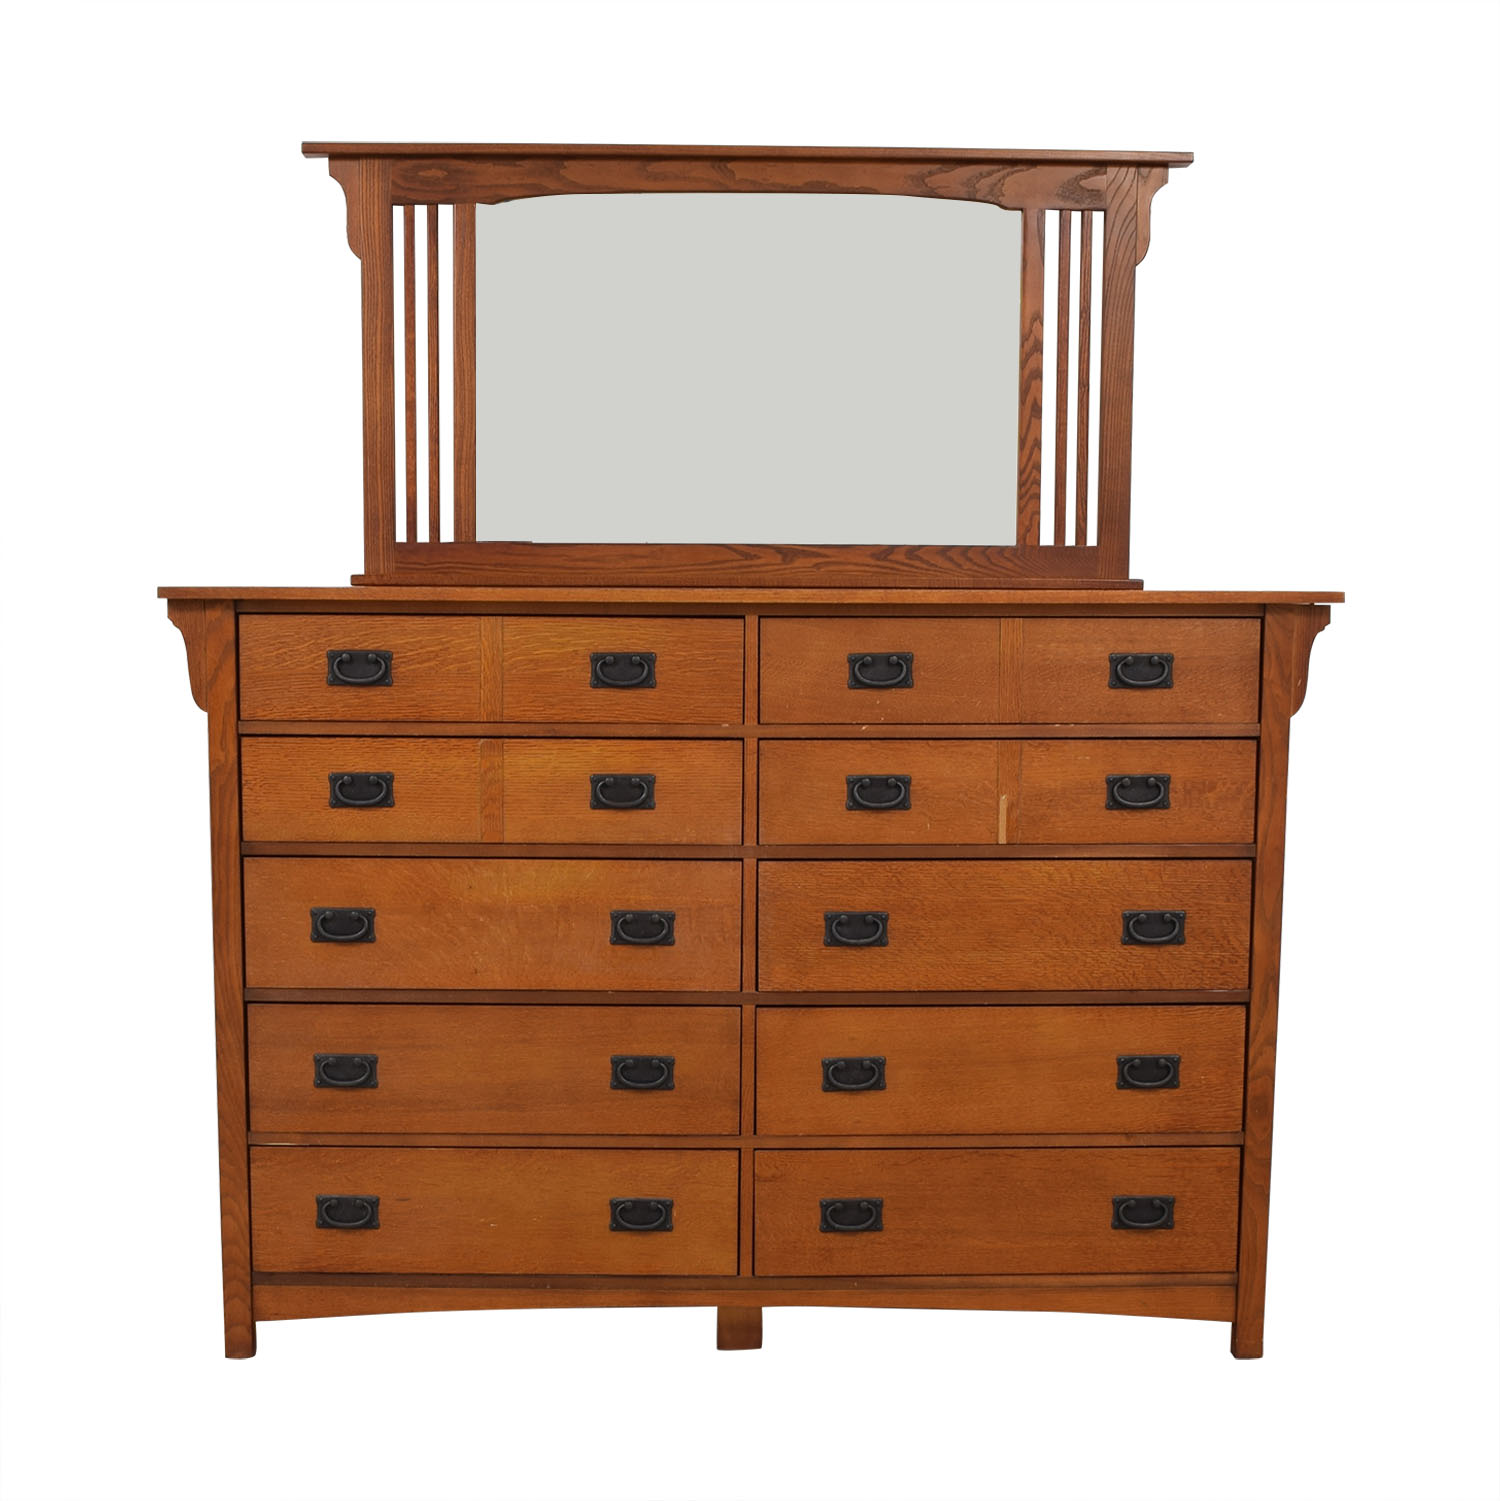 Bassett Furniture Bassett Furniture Kingston Prairie Ten-Drawer Dresser with Mirror on sale